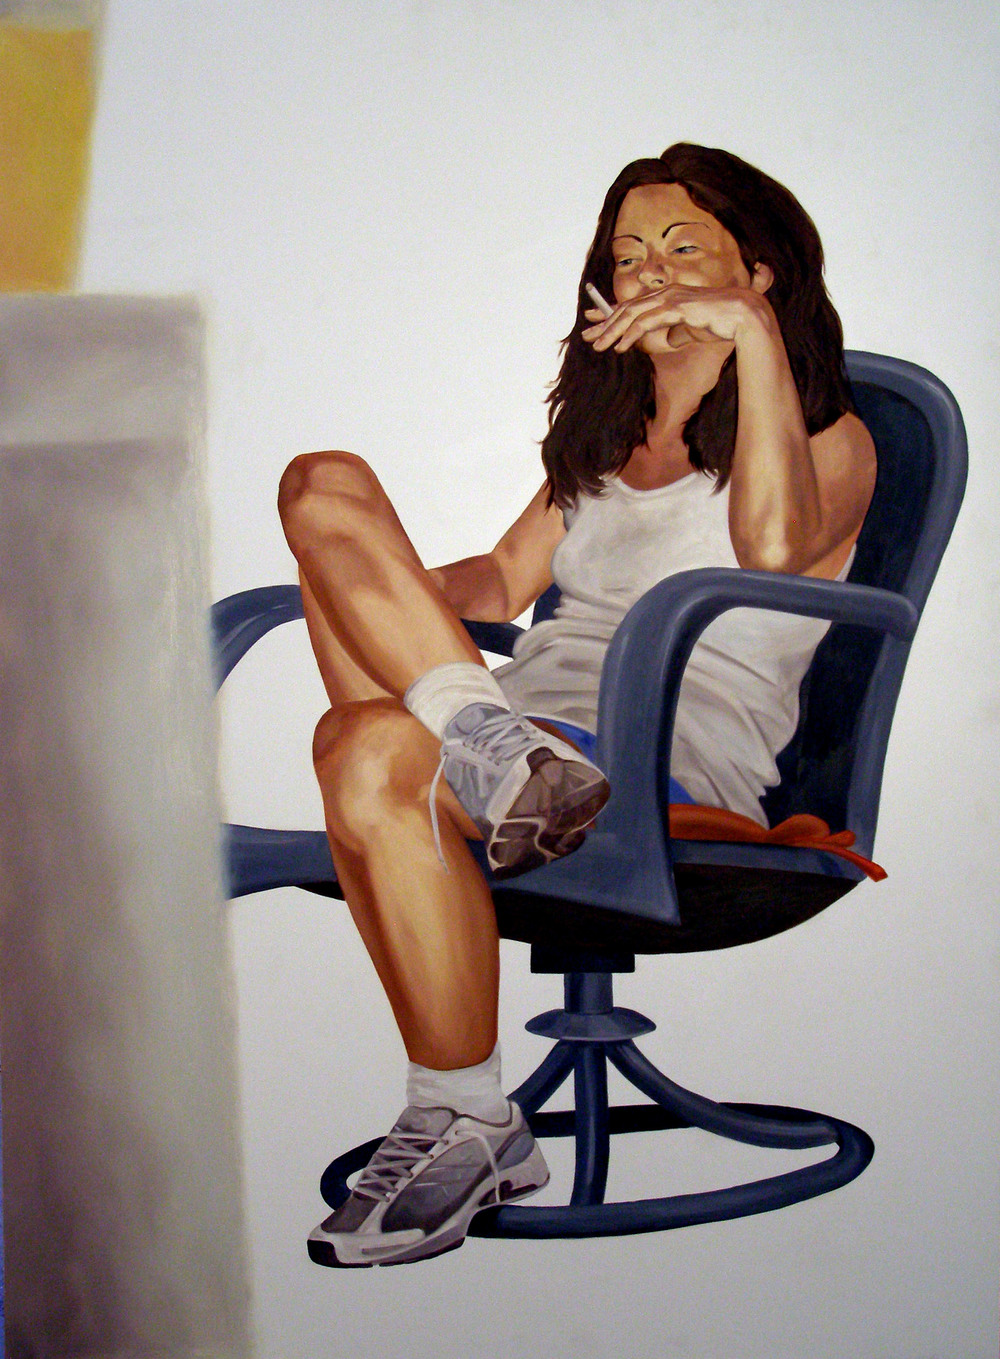 "Alone Together: September 28th, 10:23pm, 46""x 34"", oil on laminate, 2007"